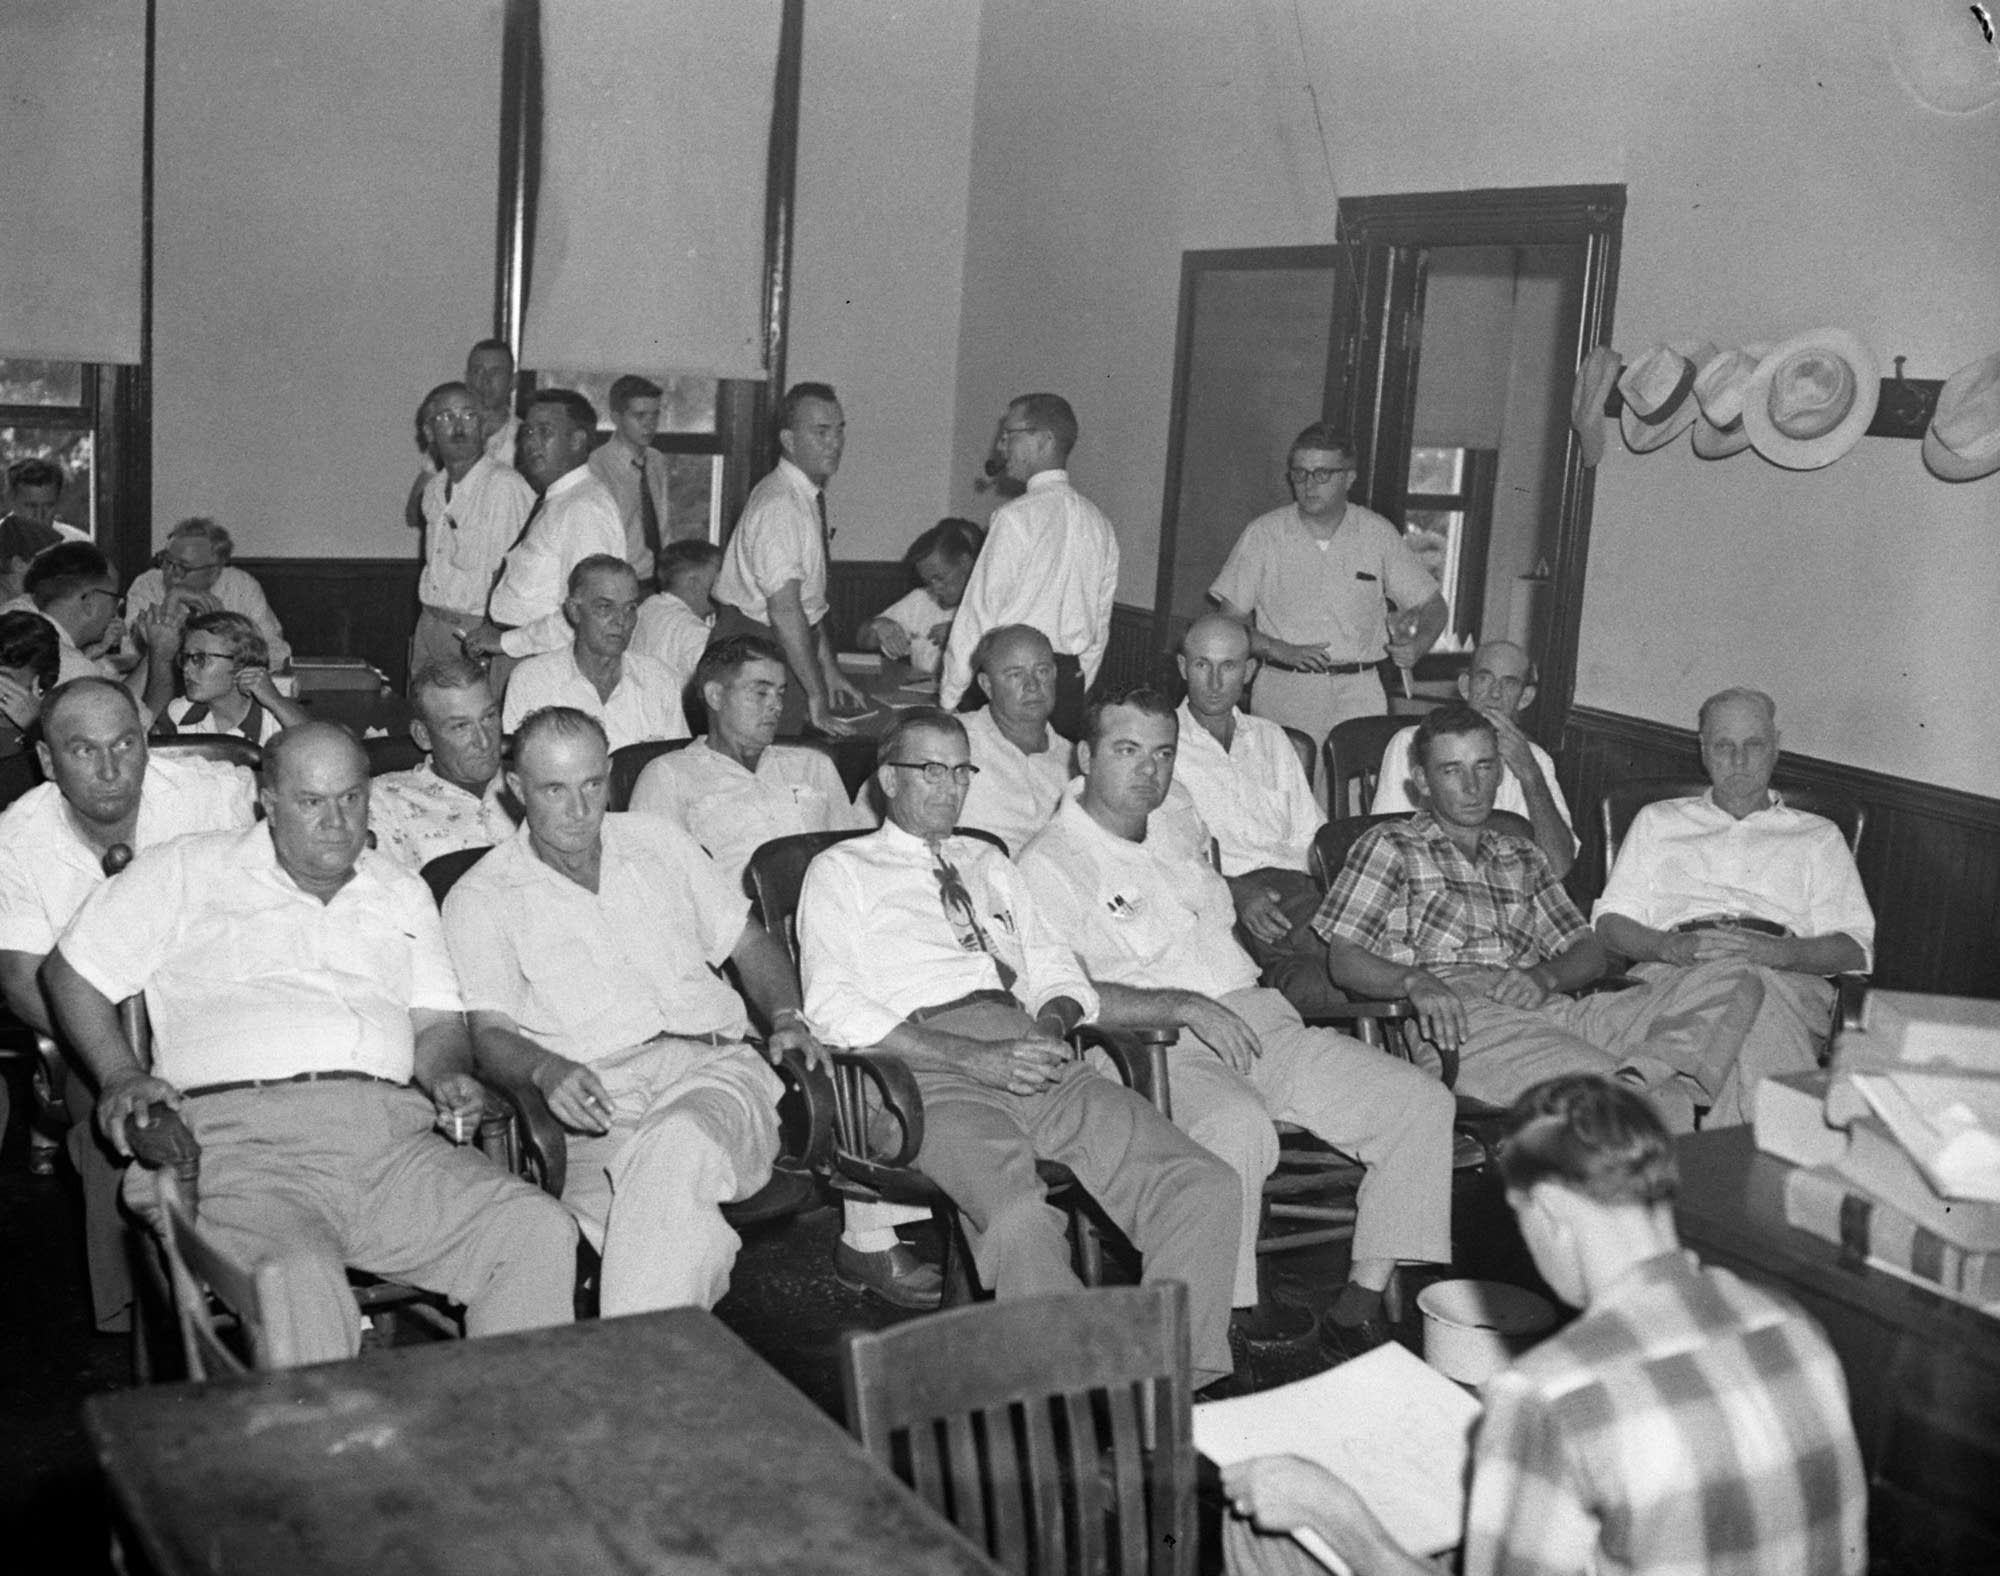 Jurors for the trial of Roy Bryant and J.W. Milam